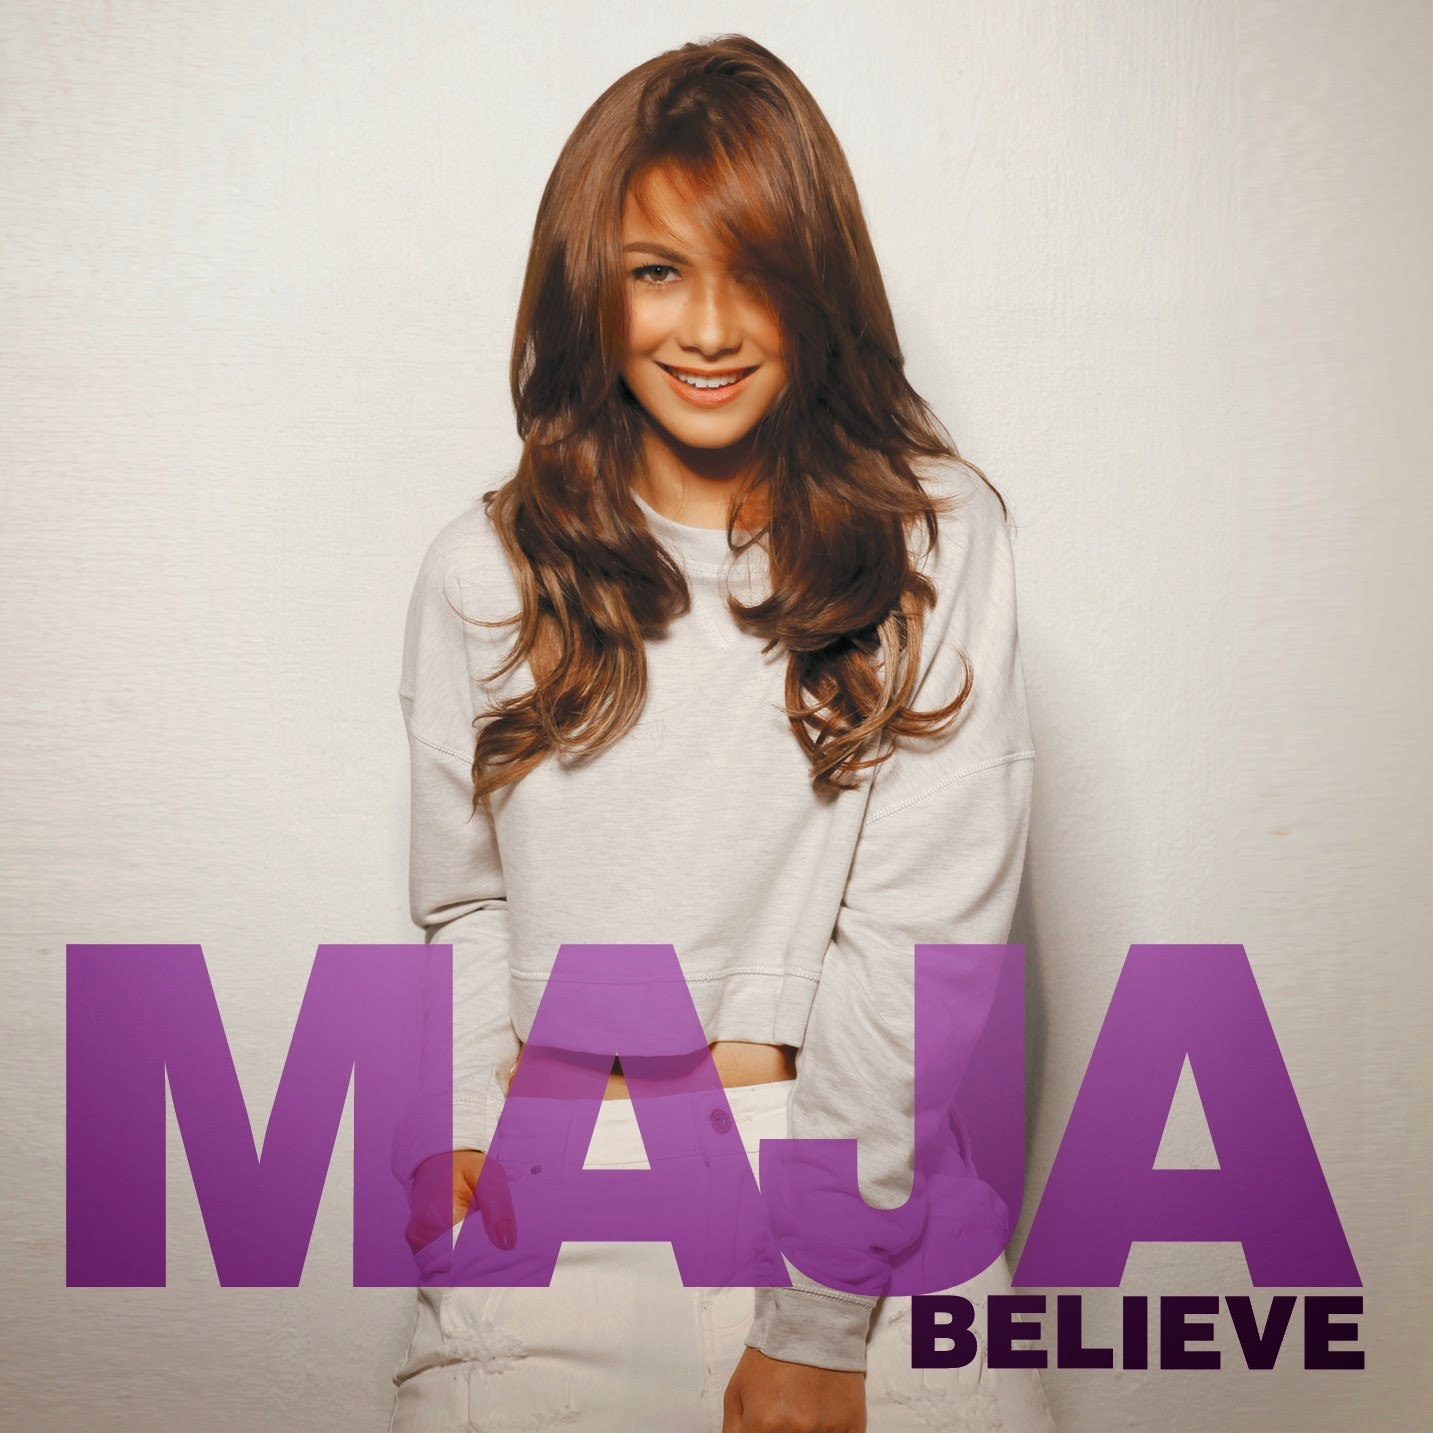 Maja-Salvador-Believe-Album